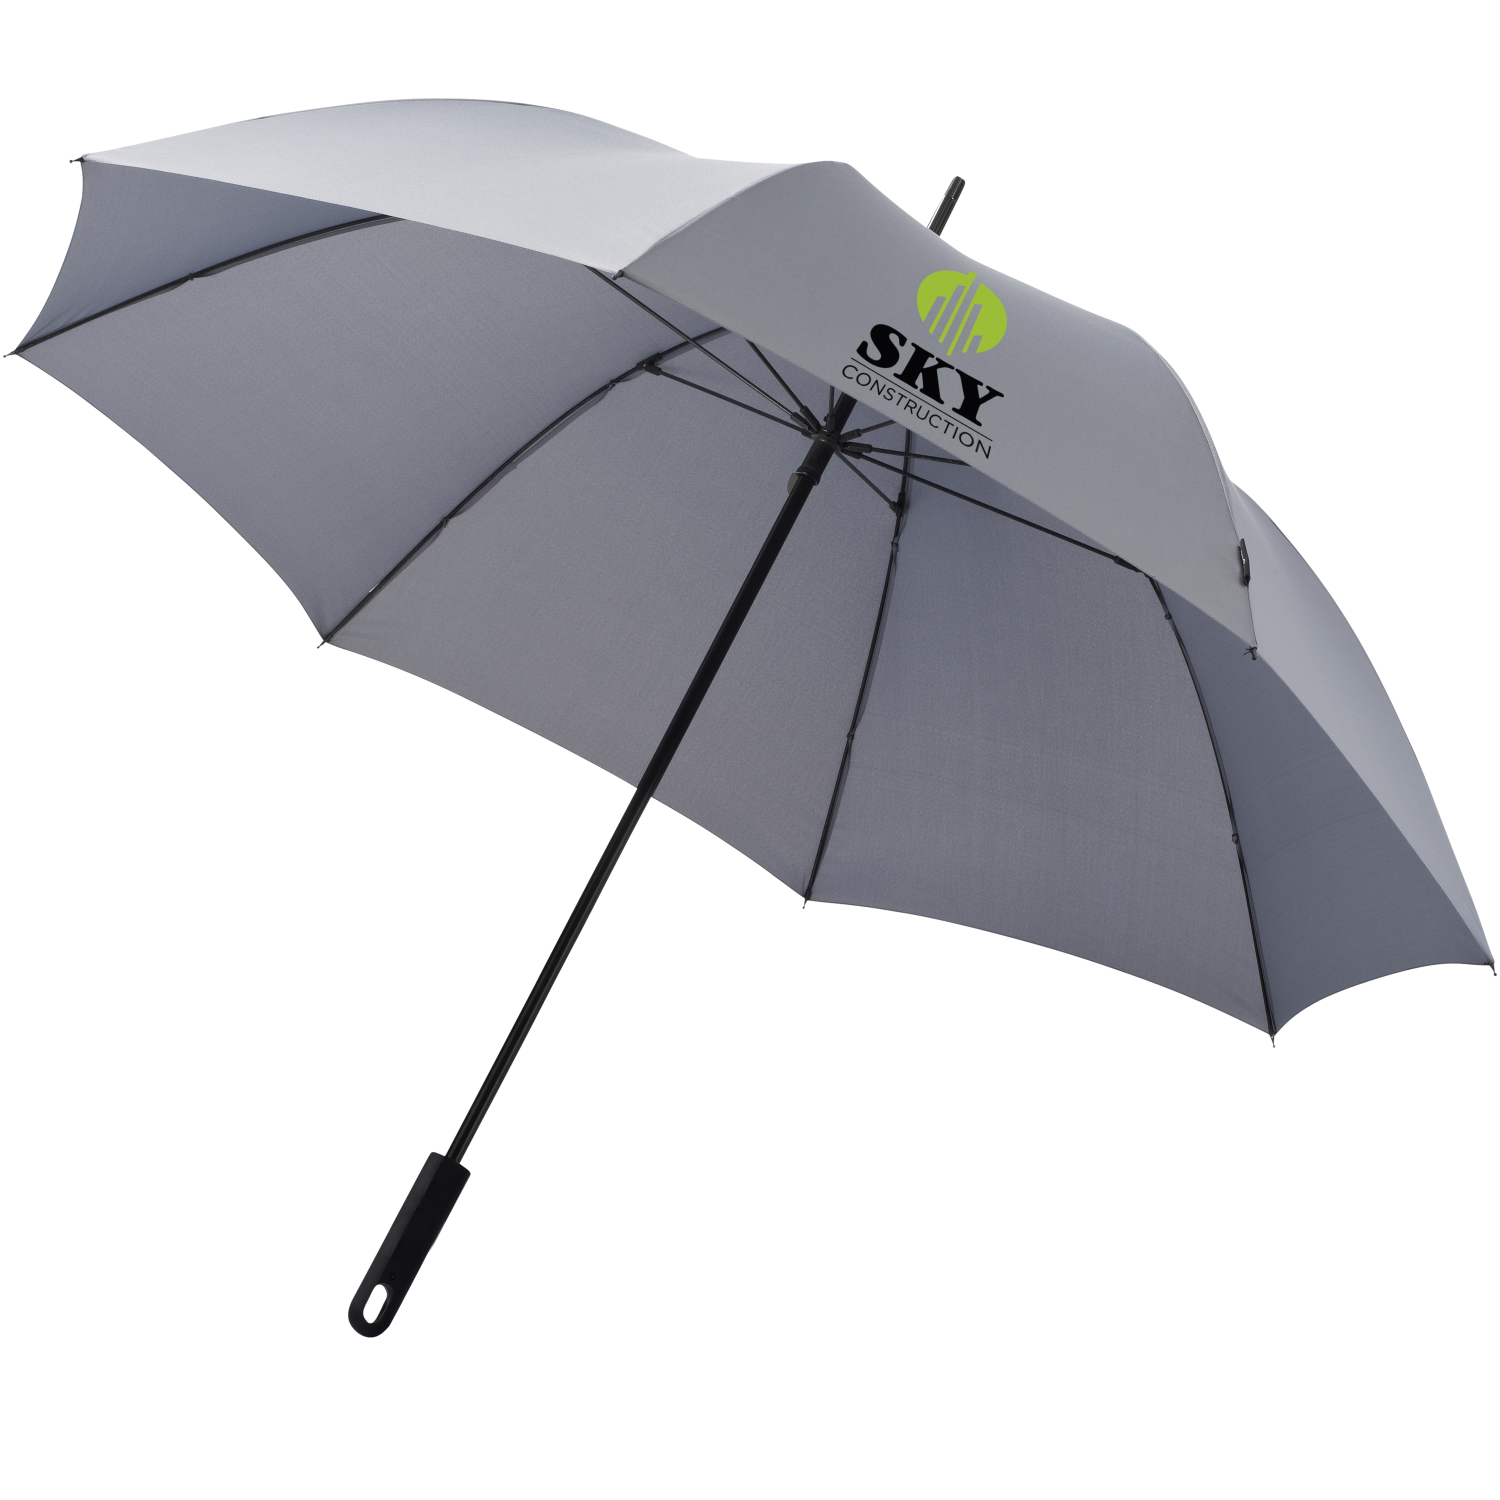 Halo 30Inch Exclusive Design Umbrella